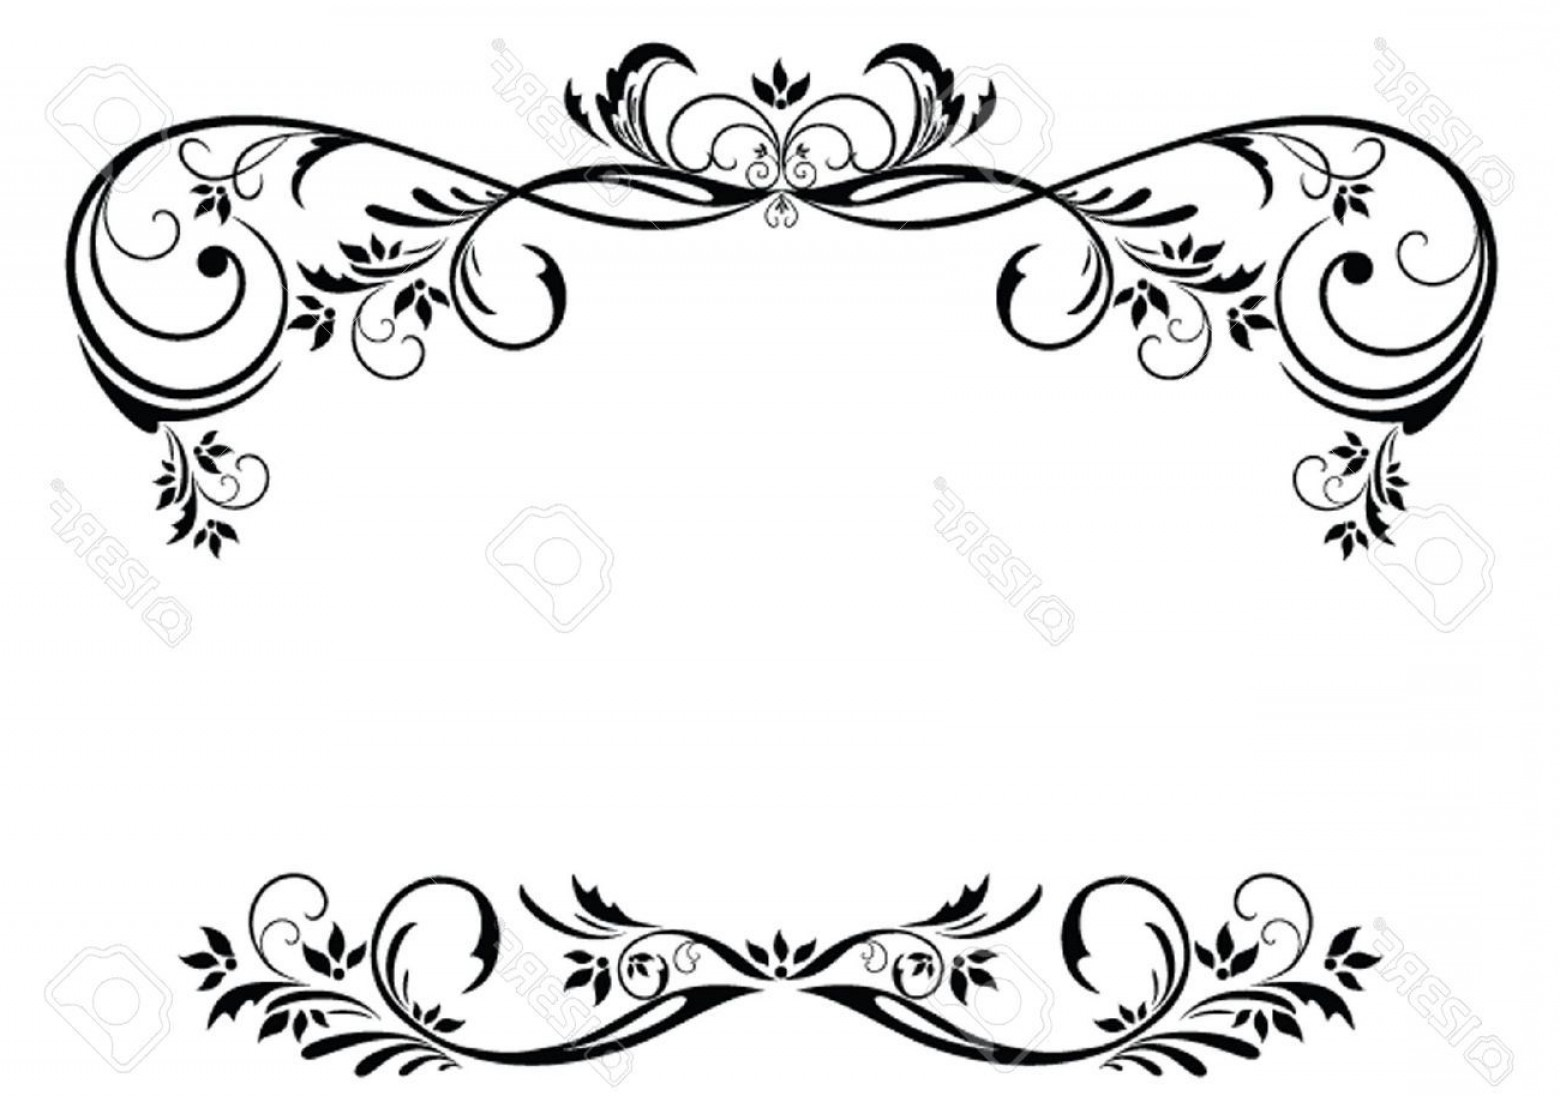 Floral border vector clipart. Vintage free ff soidergi